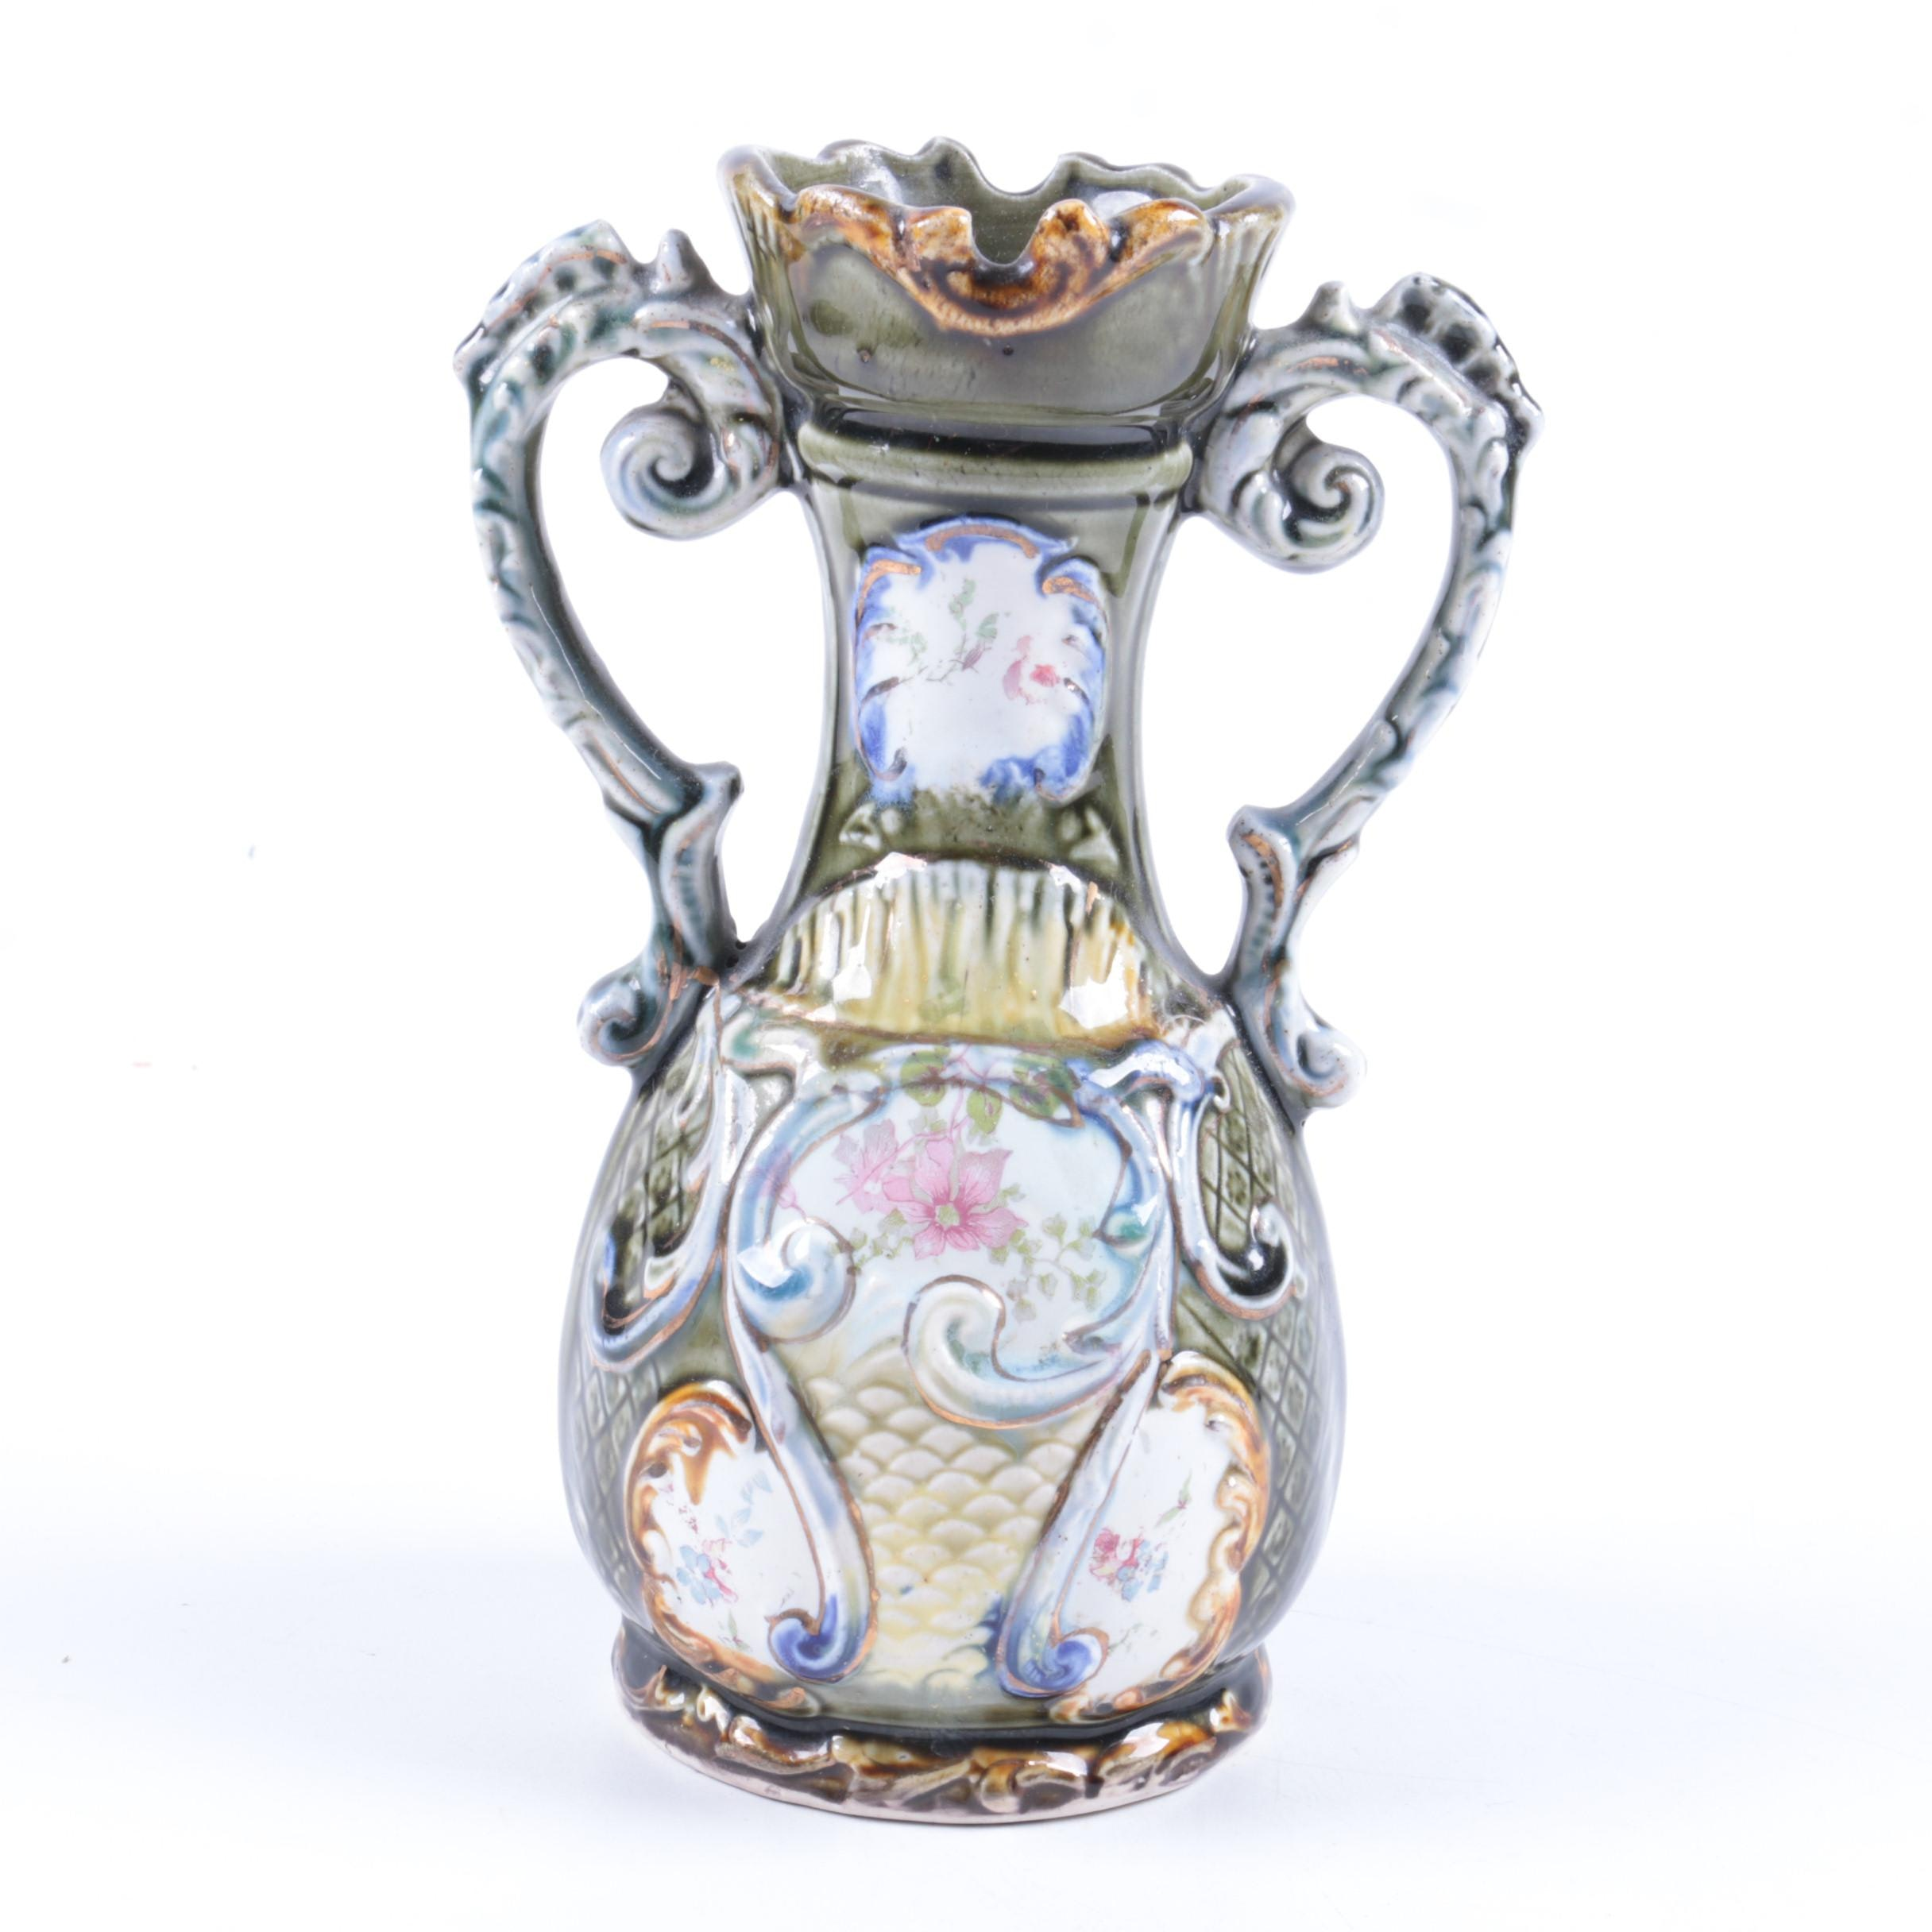 Majolica Style Urn Shaped Ceramic Vase